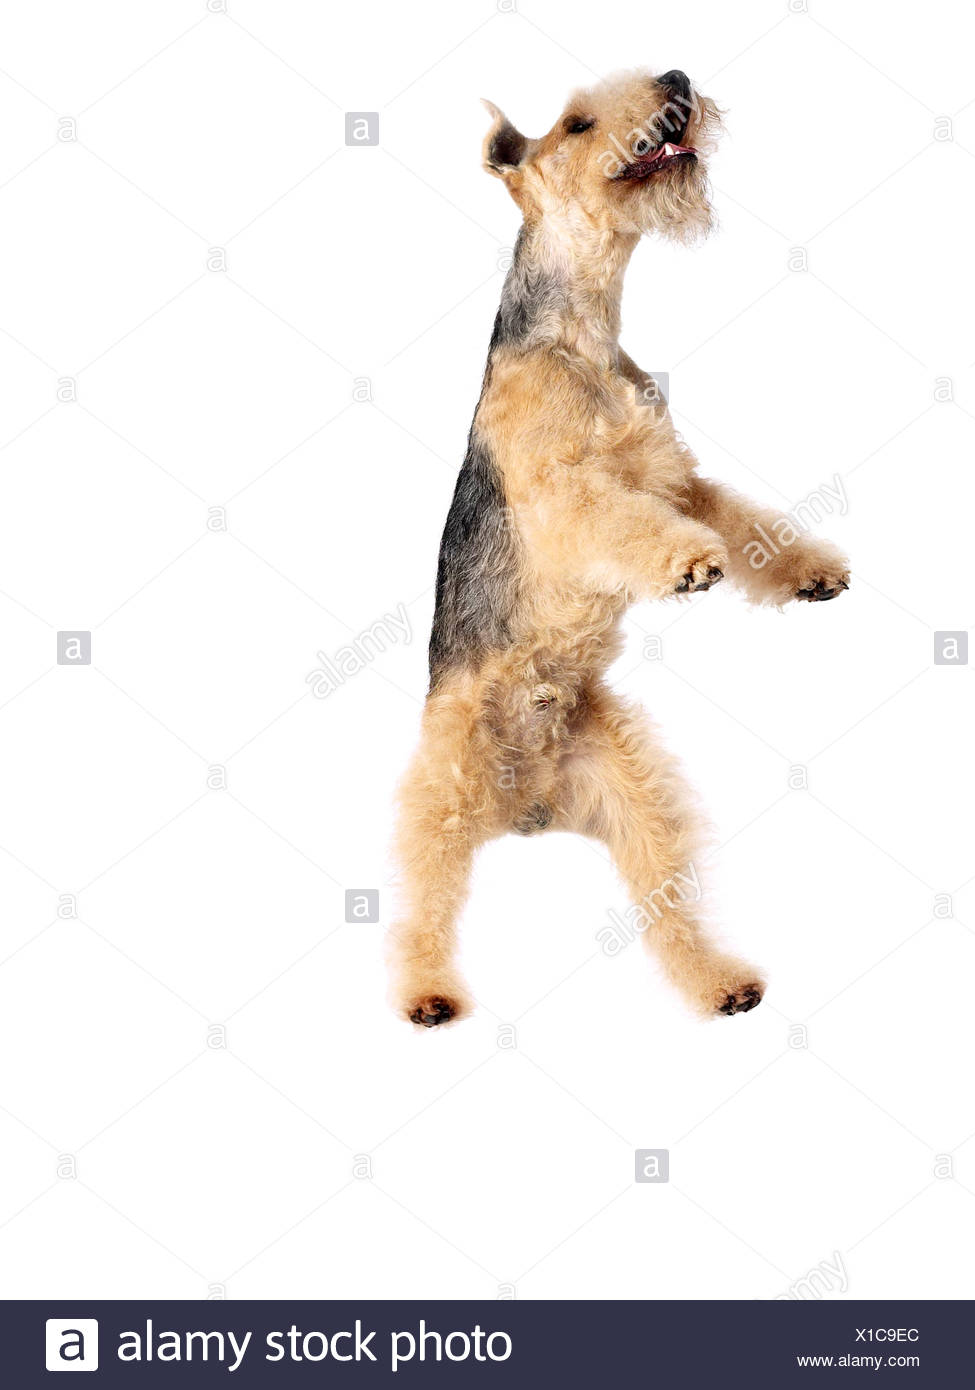 A lakeland terrier jumping in the air. - Stock Image